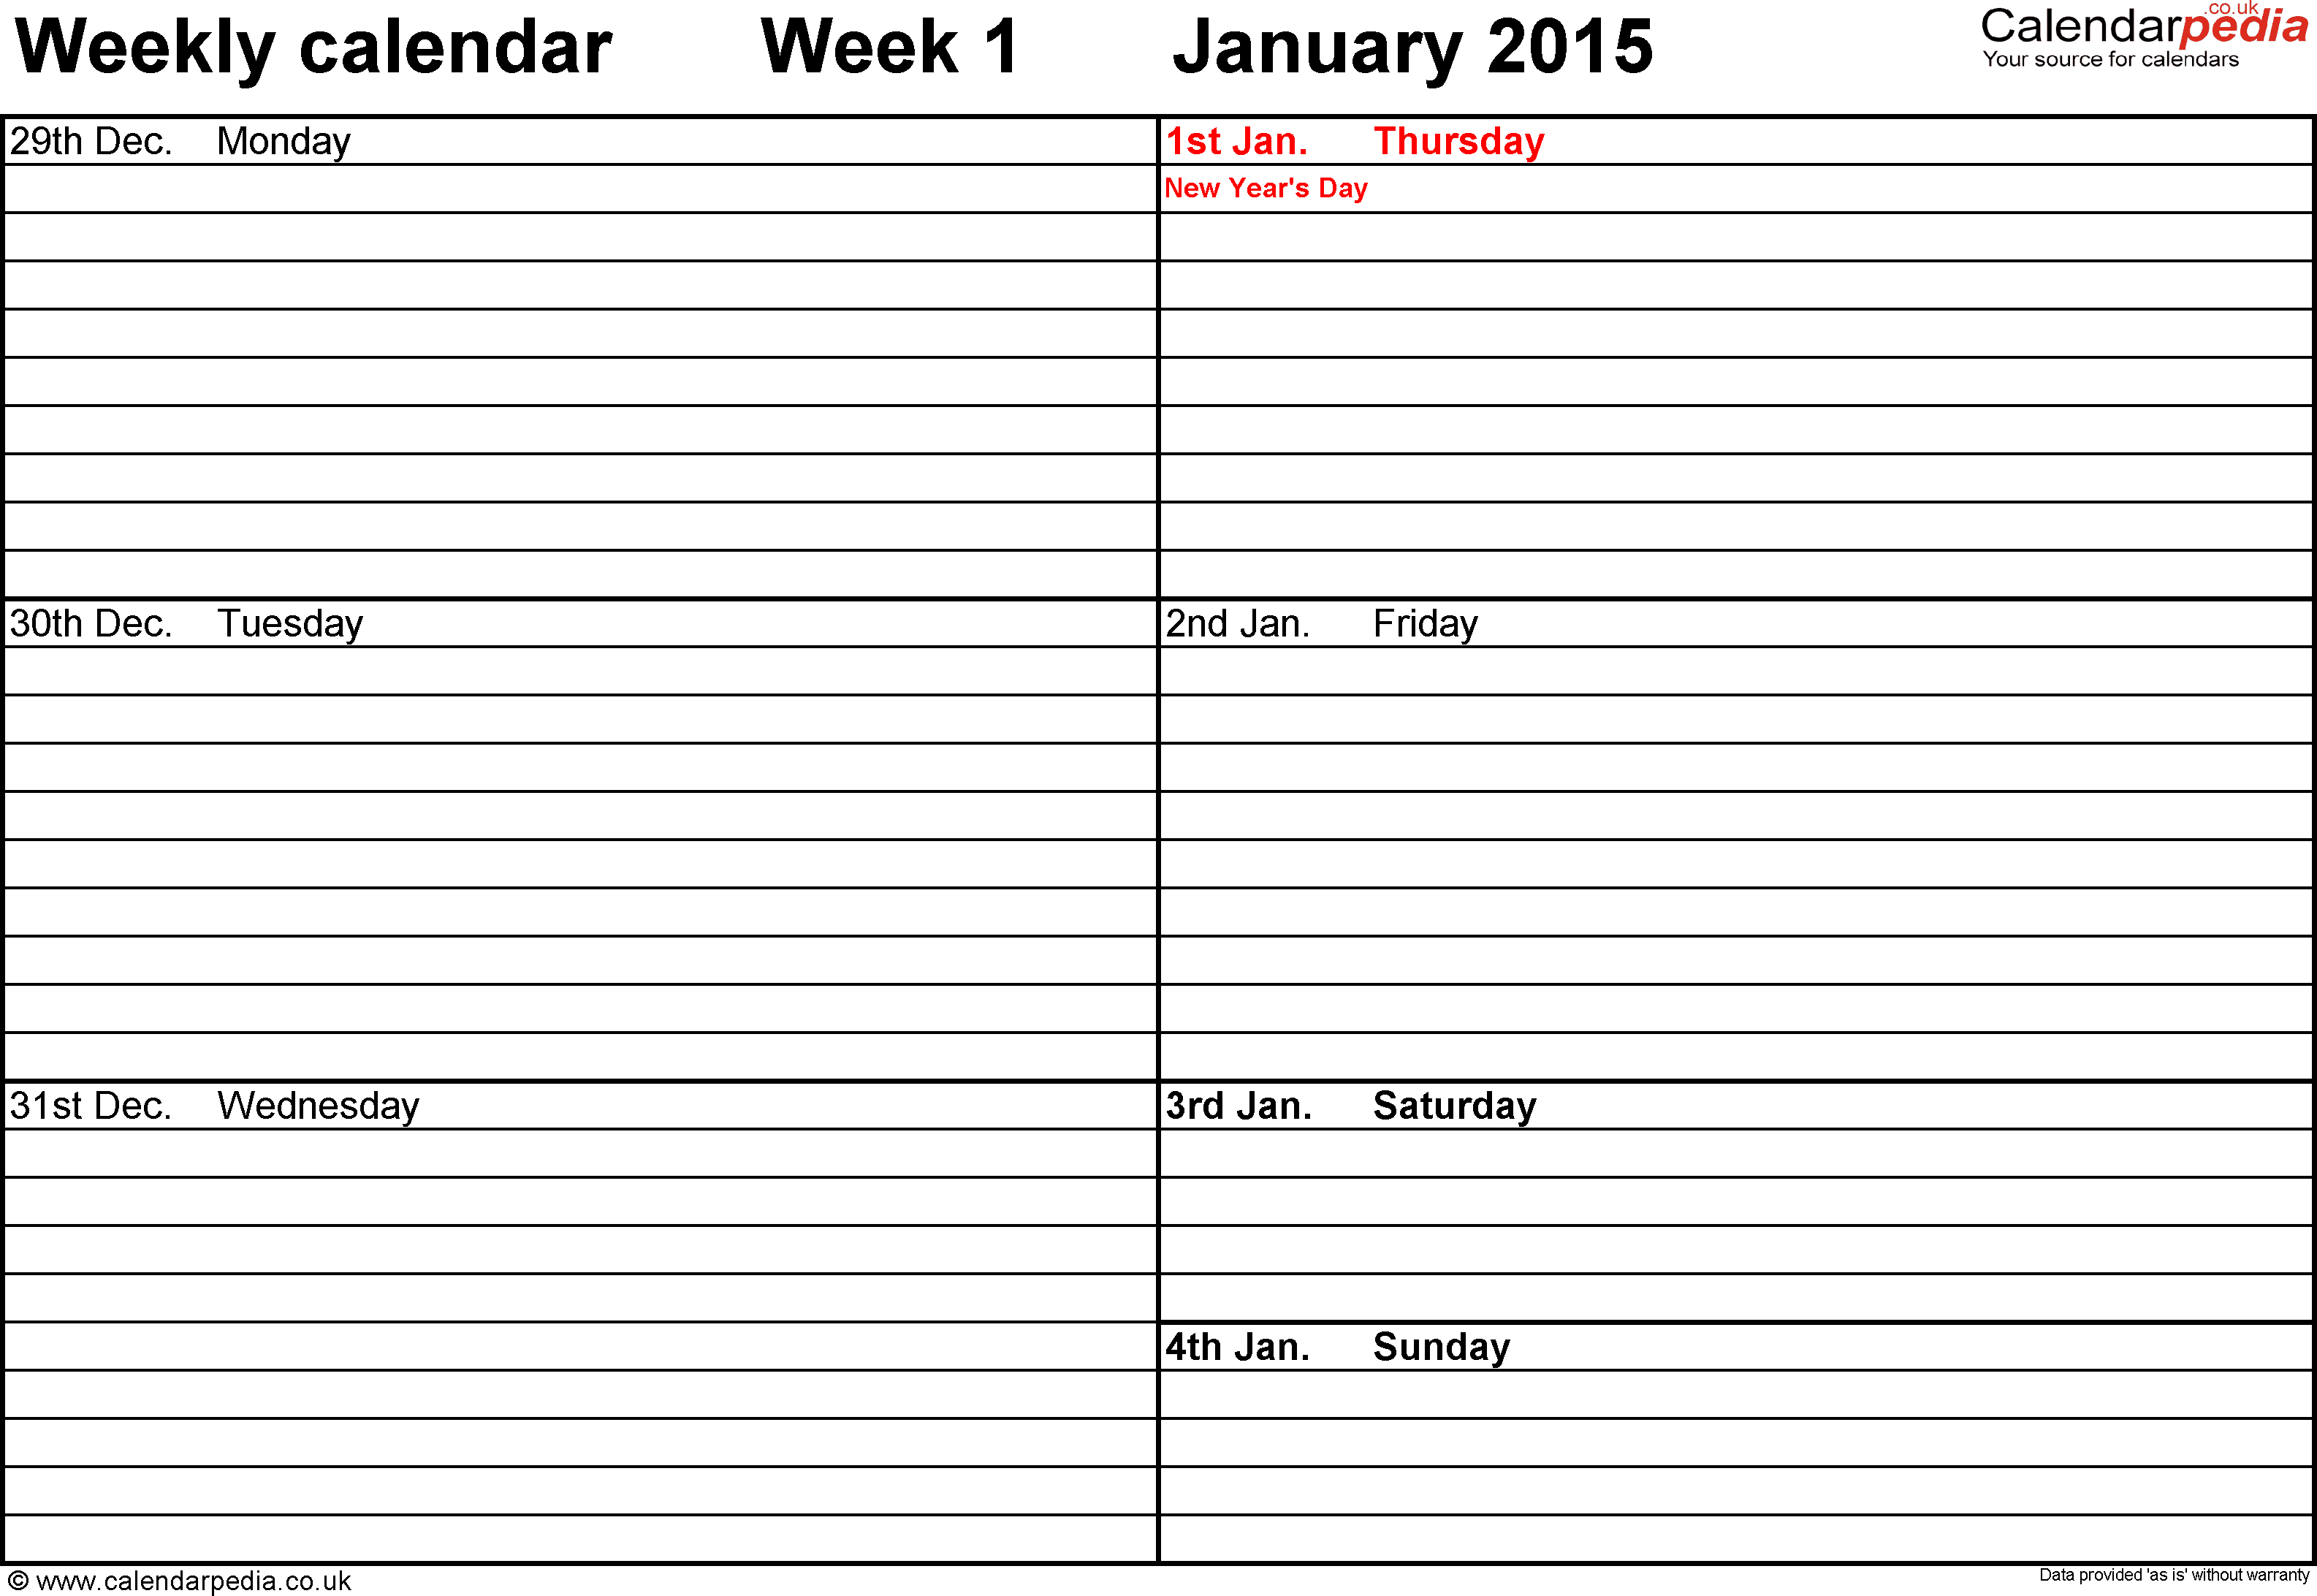 Weekly Calendar Sheets – Printable Month Calendar regarding Calendarpedia Weekly Schedule